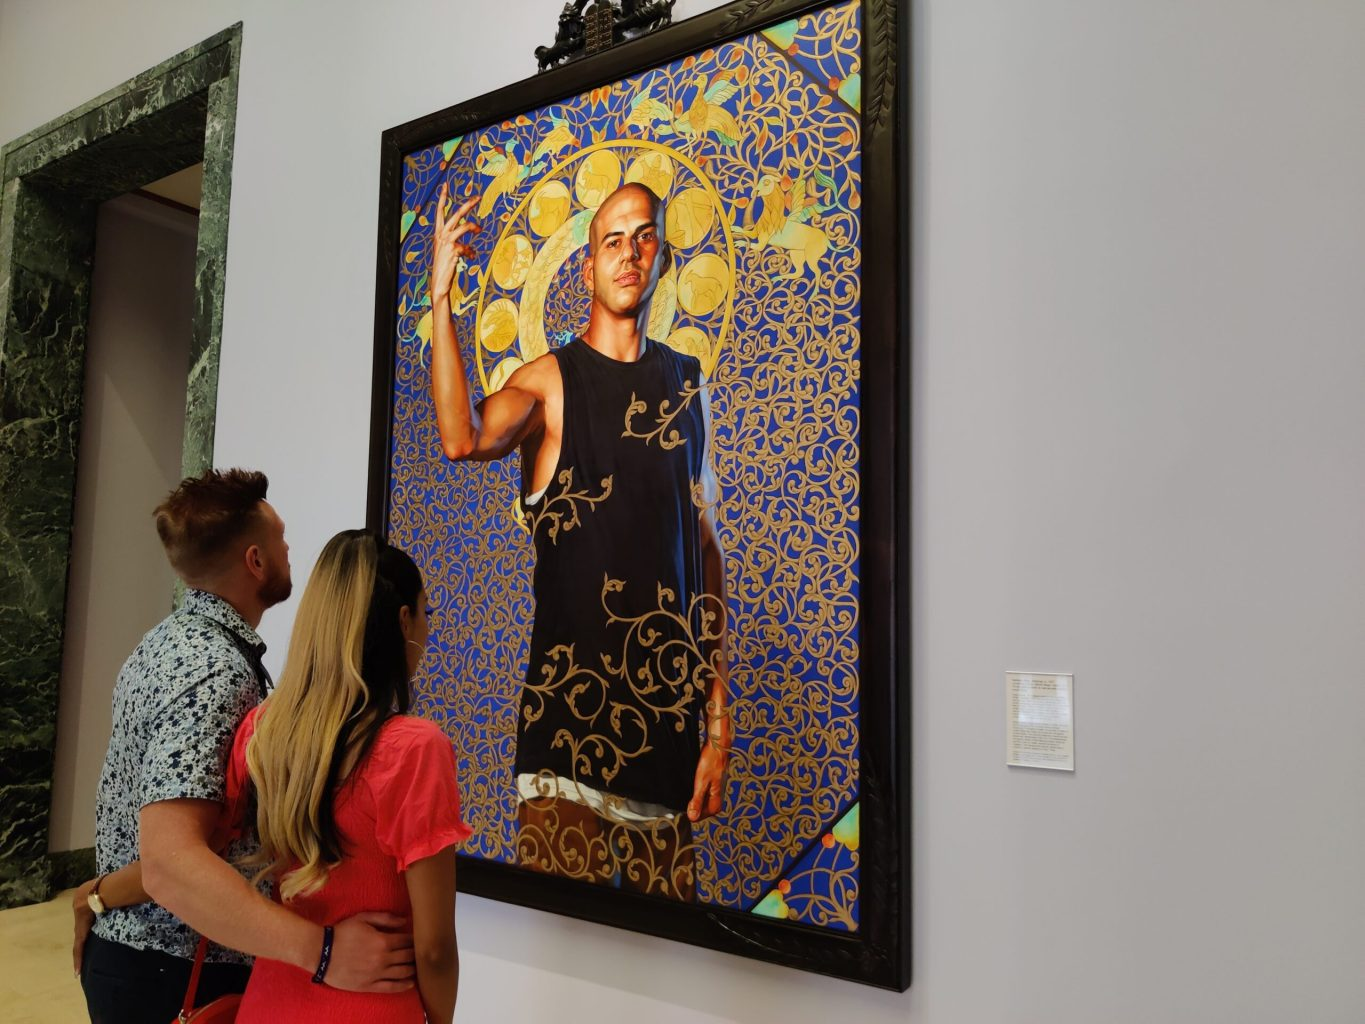 Visitors standing with their arms around each other looking at a painting of a subject surrounded by decorative spirals